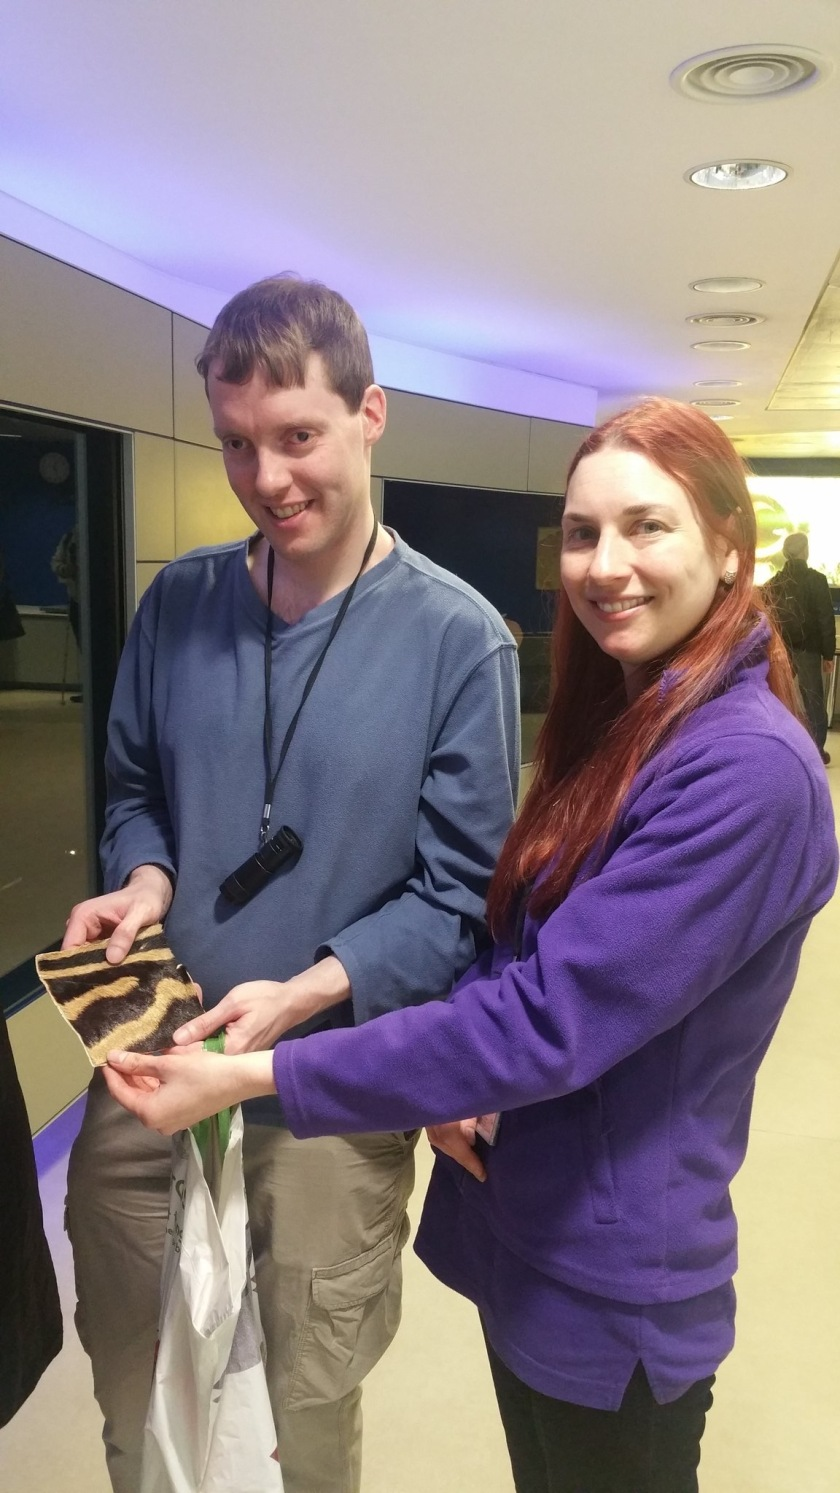 Glen holding a square piece of zebra fur with Sarah, one of the guides at the Natural History Museum.